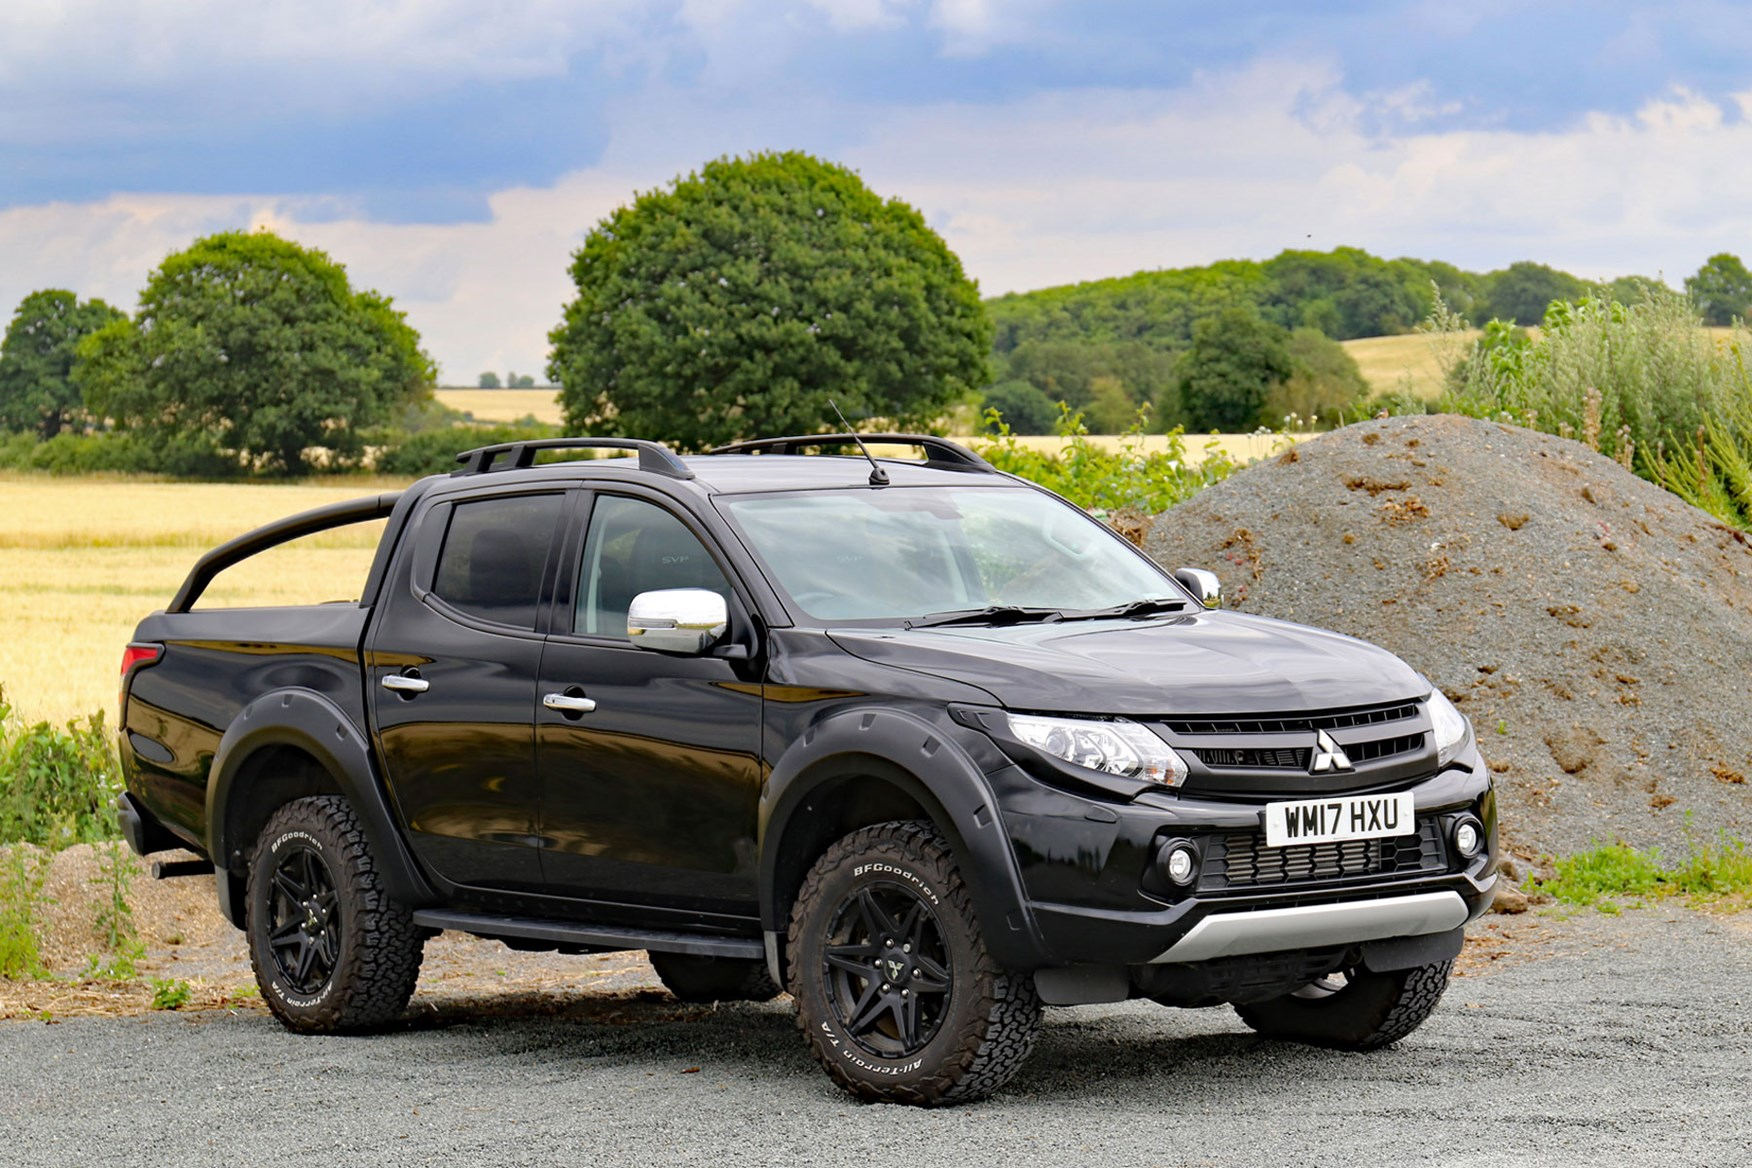 Mitsubishi L200 Barbarian SVP review - front view, black, countryside and gravel